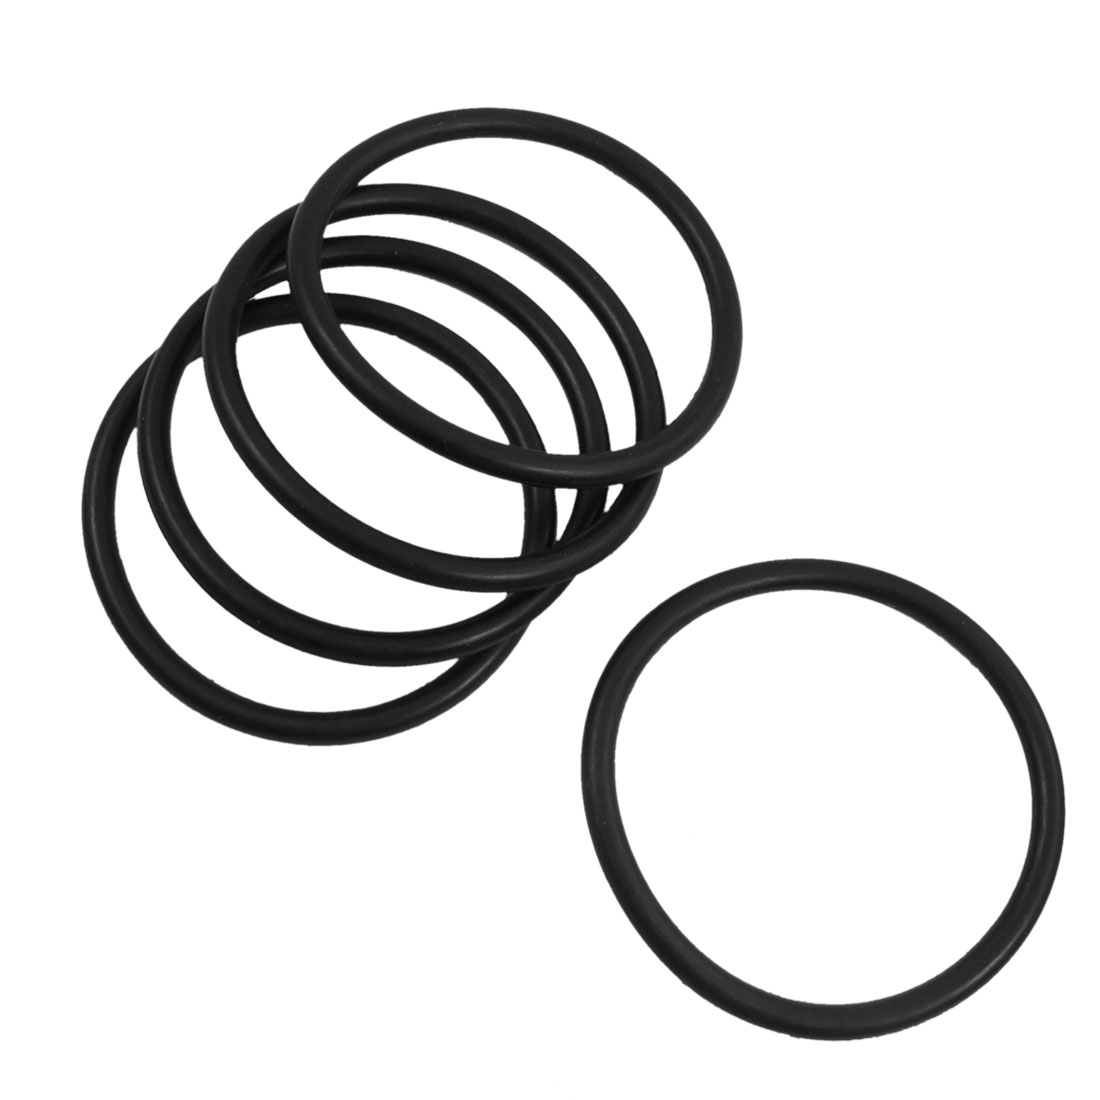 5 Pcs 70mm Outside Dia 5mm Thick Sealing Oil Filter O Rings Gaskets